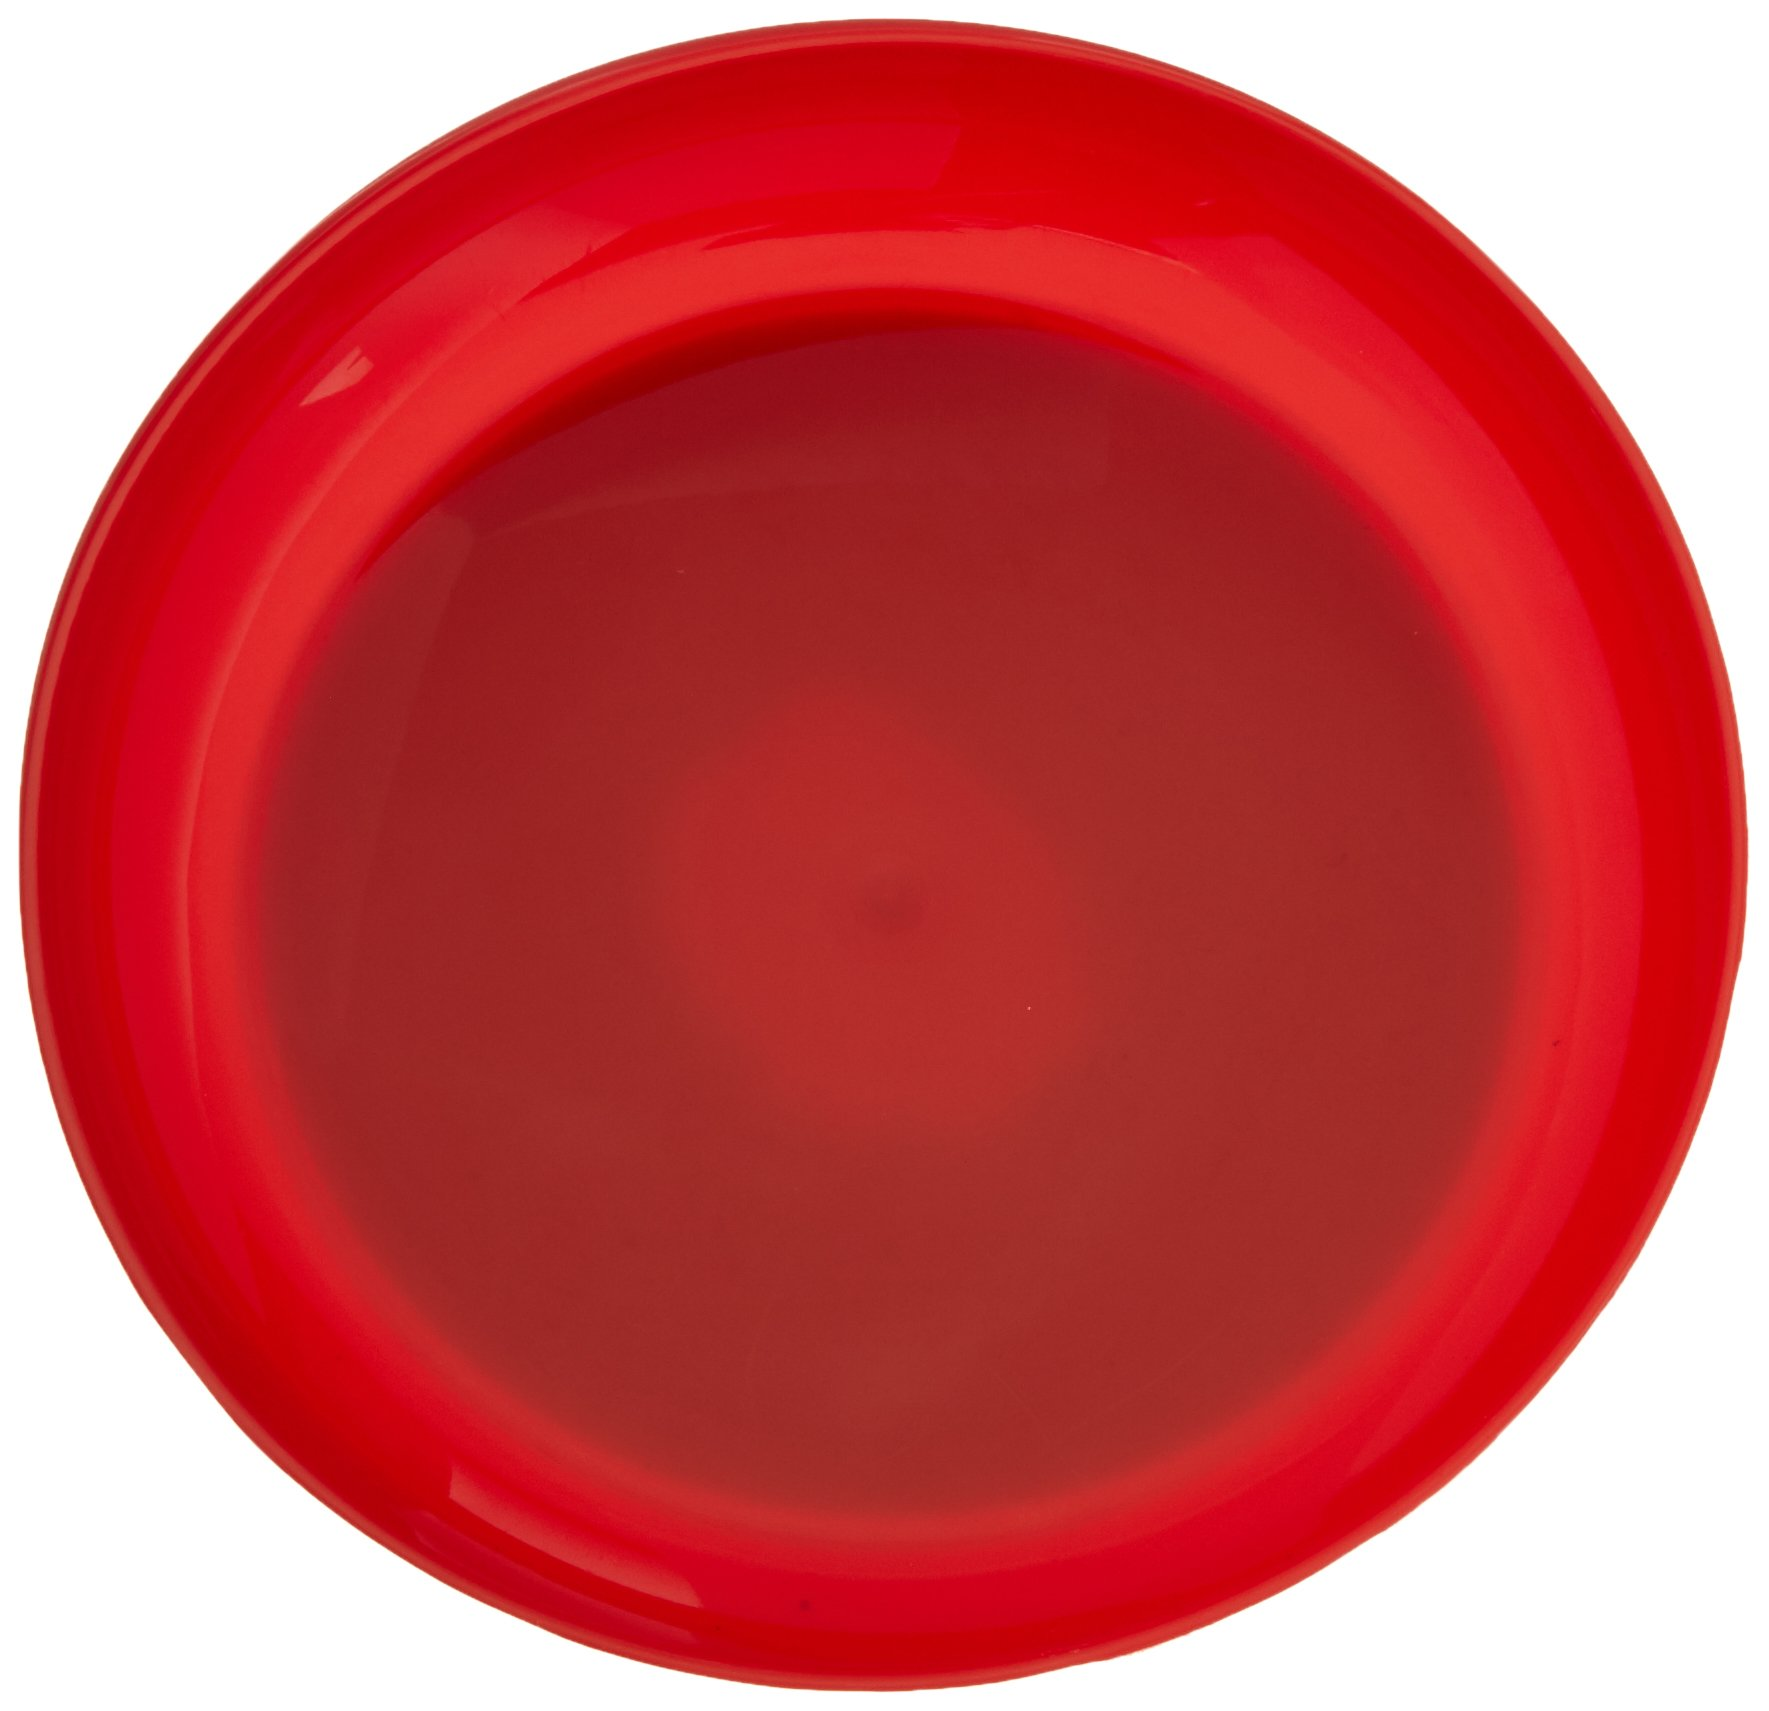 Sammons Preston Red Round Scoop Dish, Unbreakable 8'' Scooper Bowl for Elderly, Disabled, & Handicapped, Plate with Non Skid Rubber Padded Bottom for Independent Eating, Self-Feeding Aid by Sammons Preston